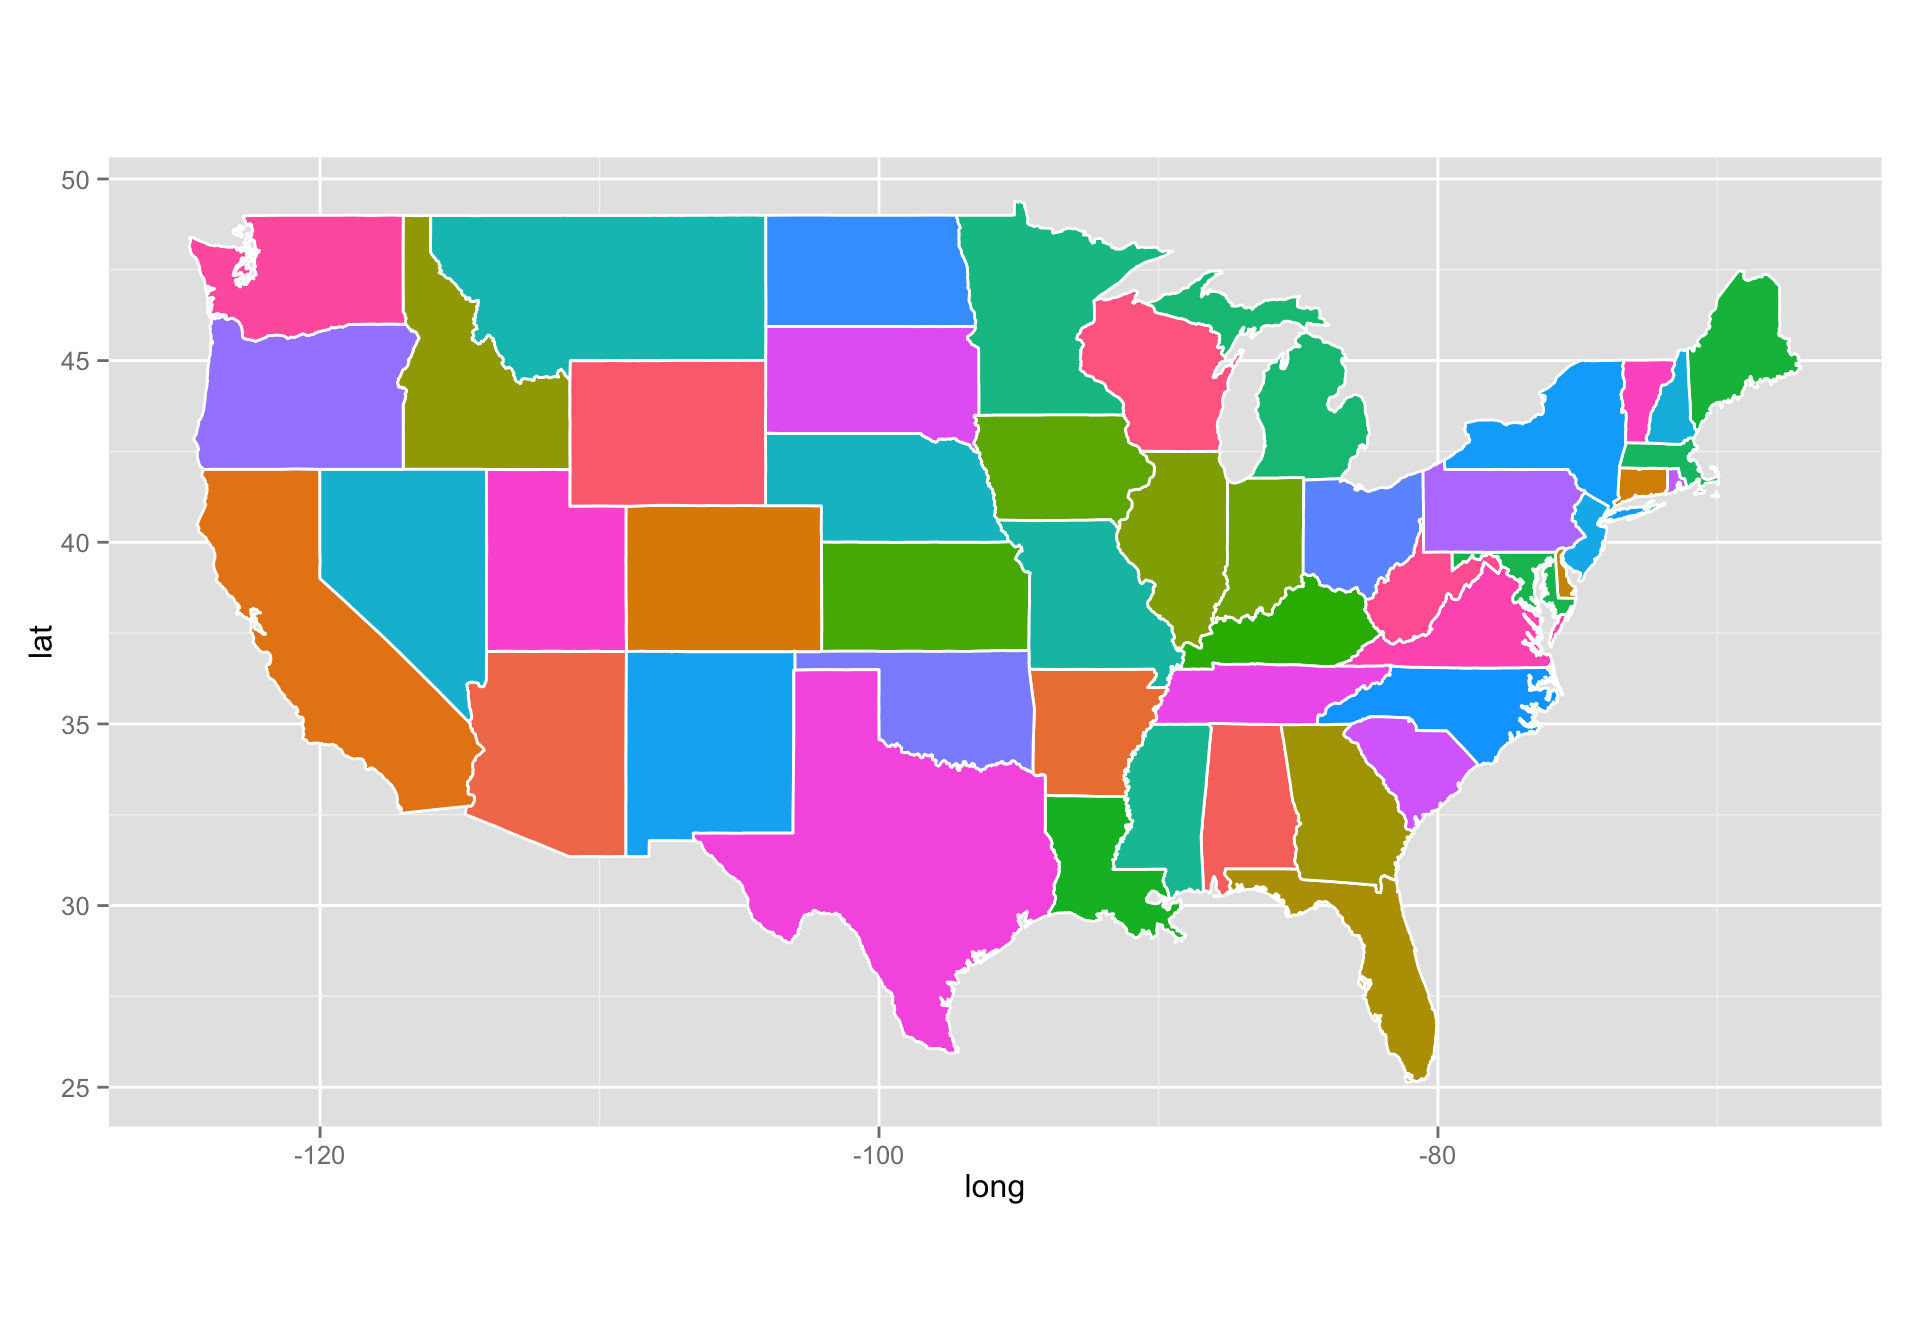 Making Maps With R Reproducible Research - Google map us population density map by county